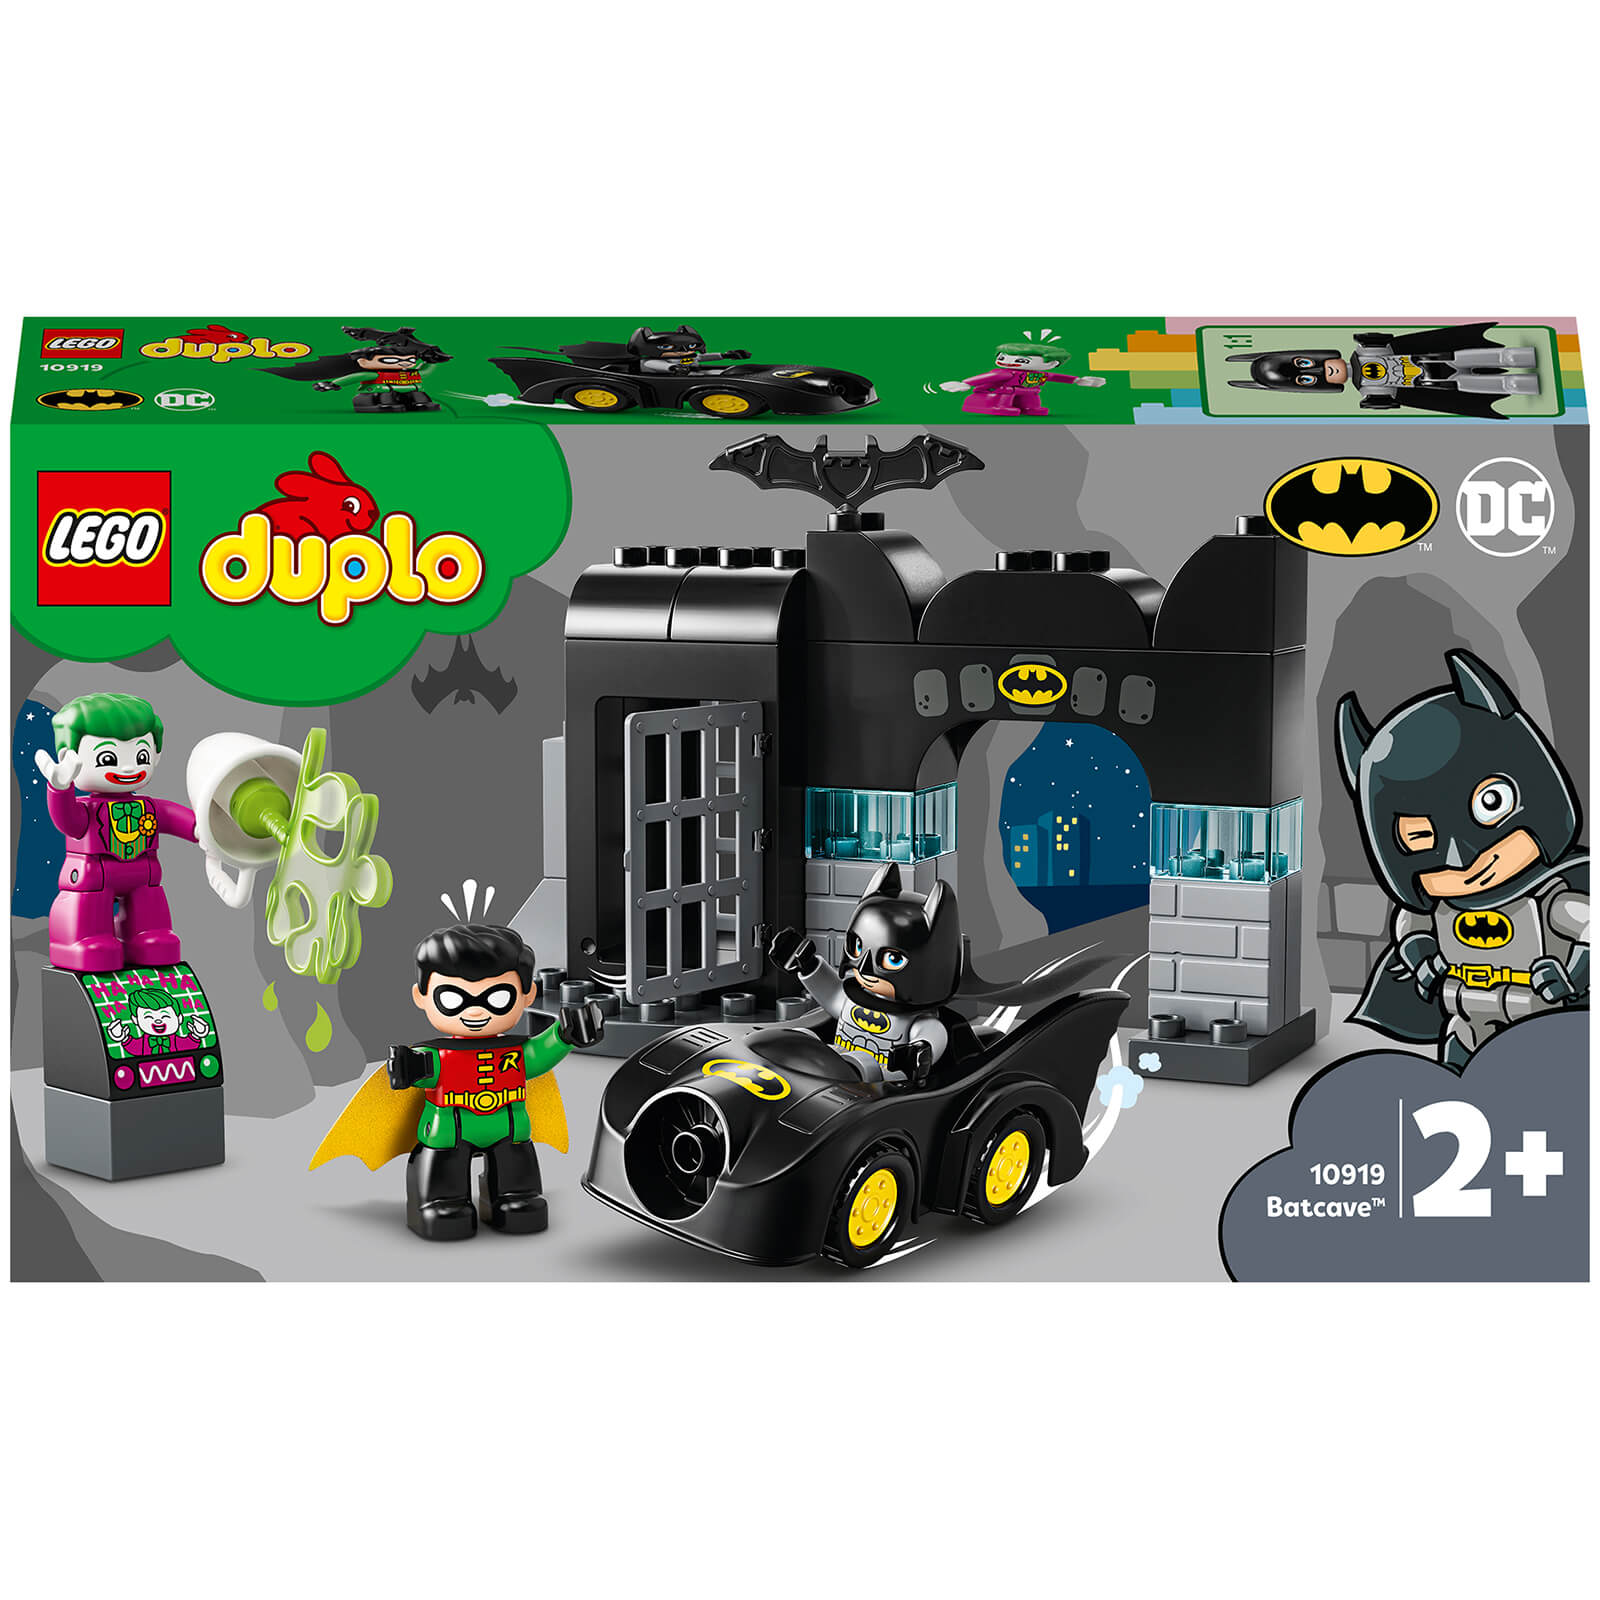 Image of 10919 LEGO® DUPLO® Battery cave